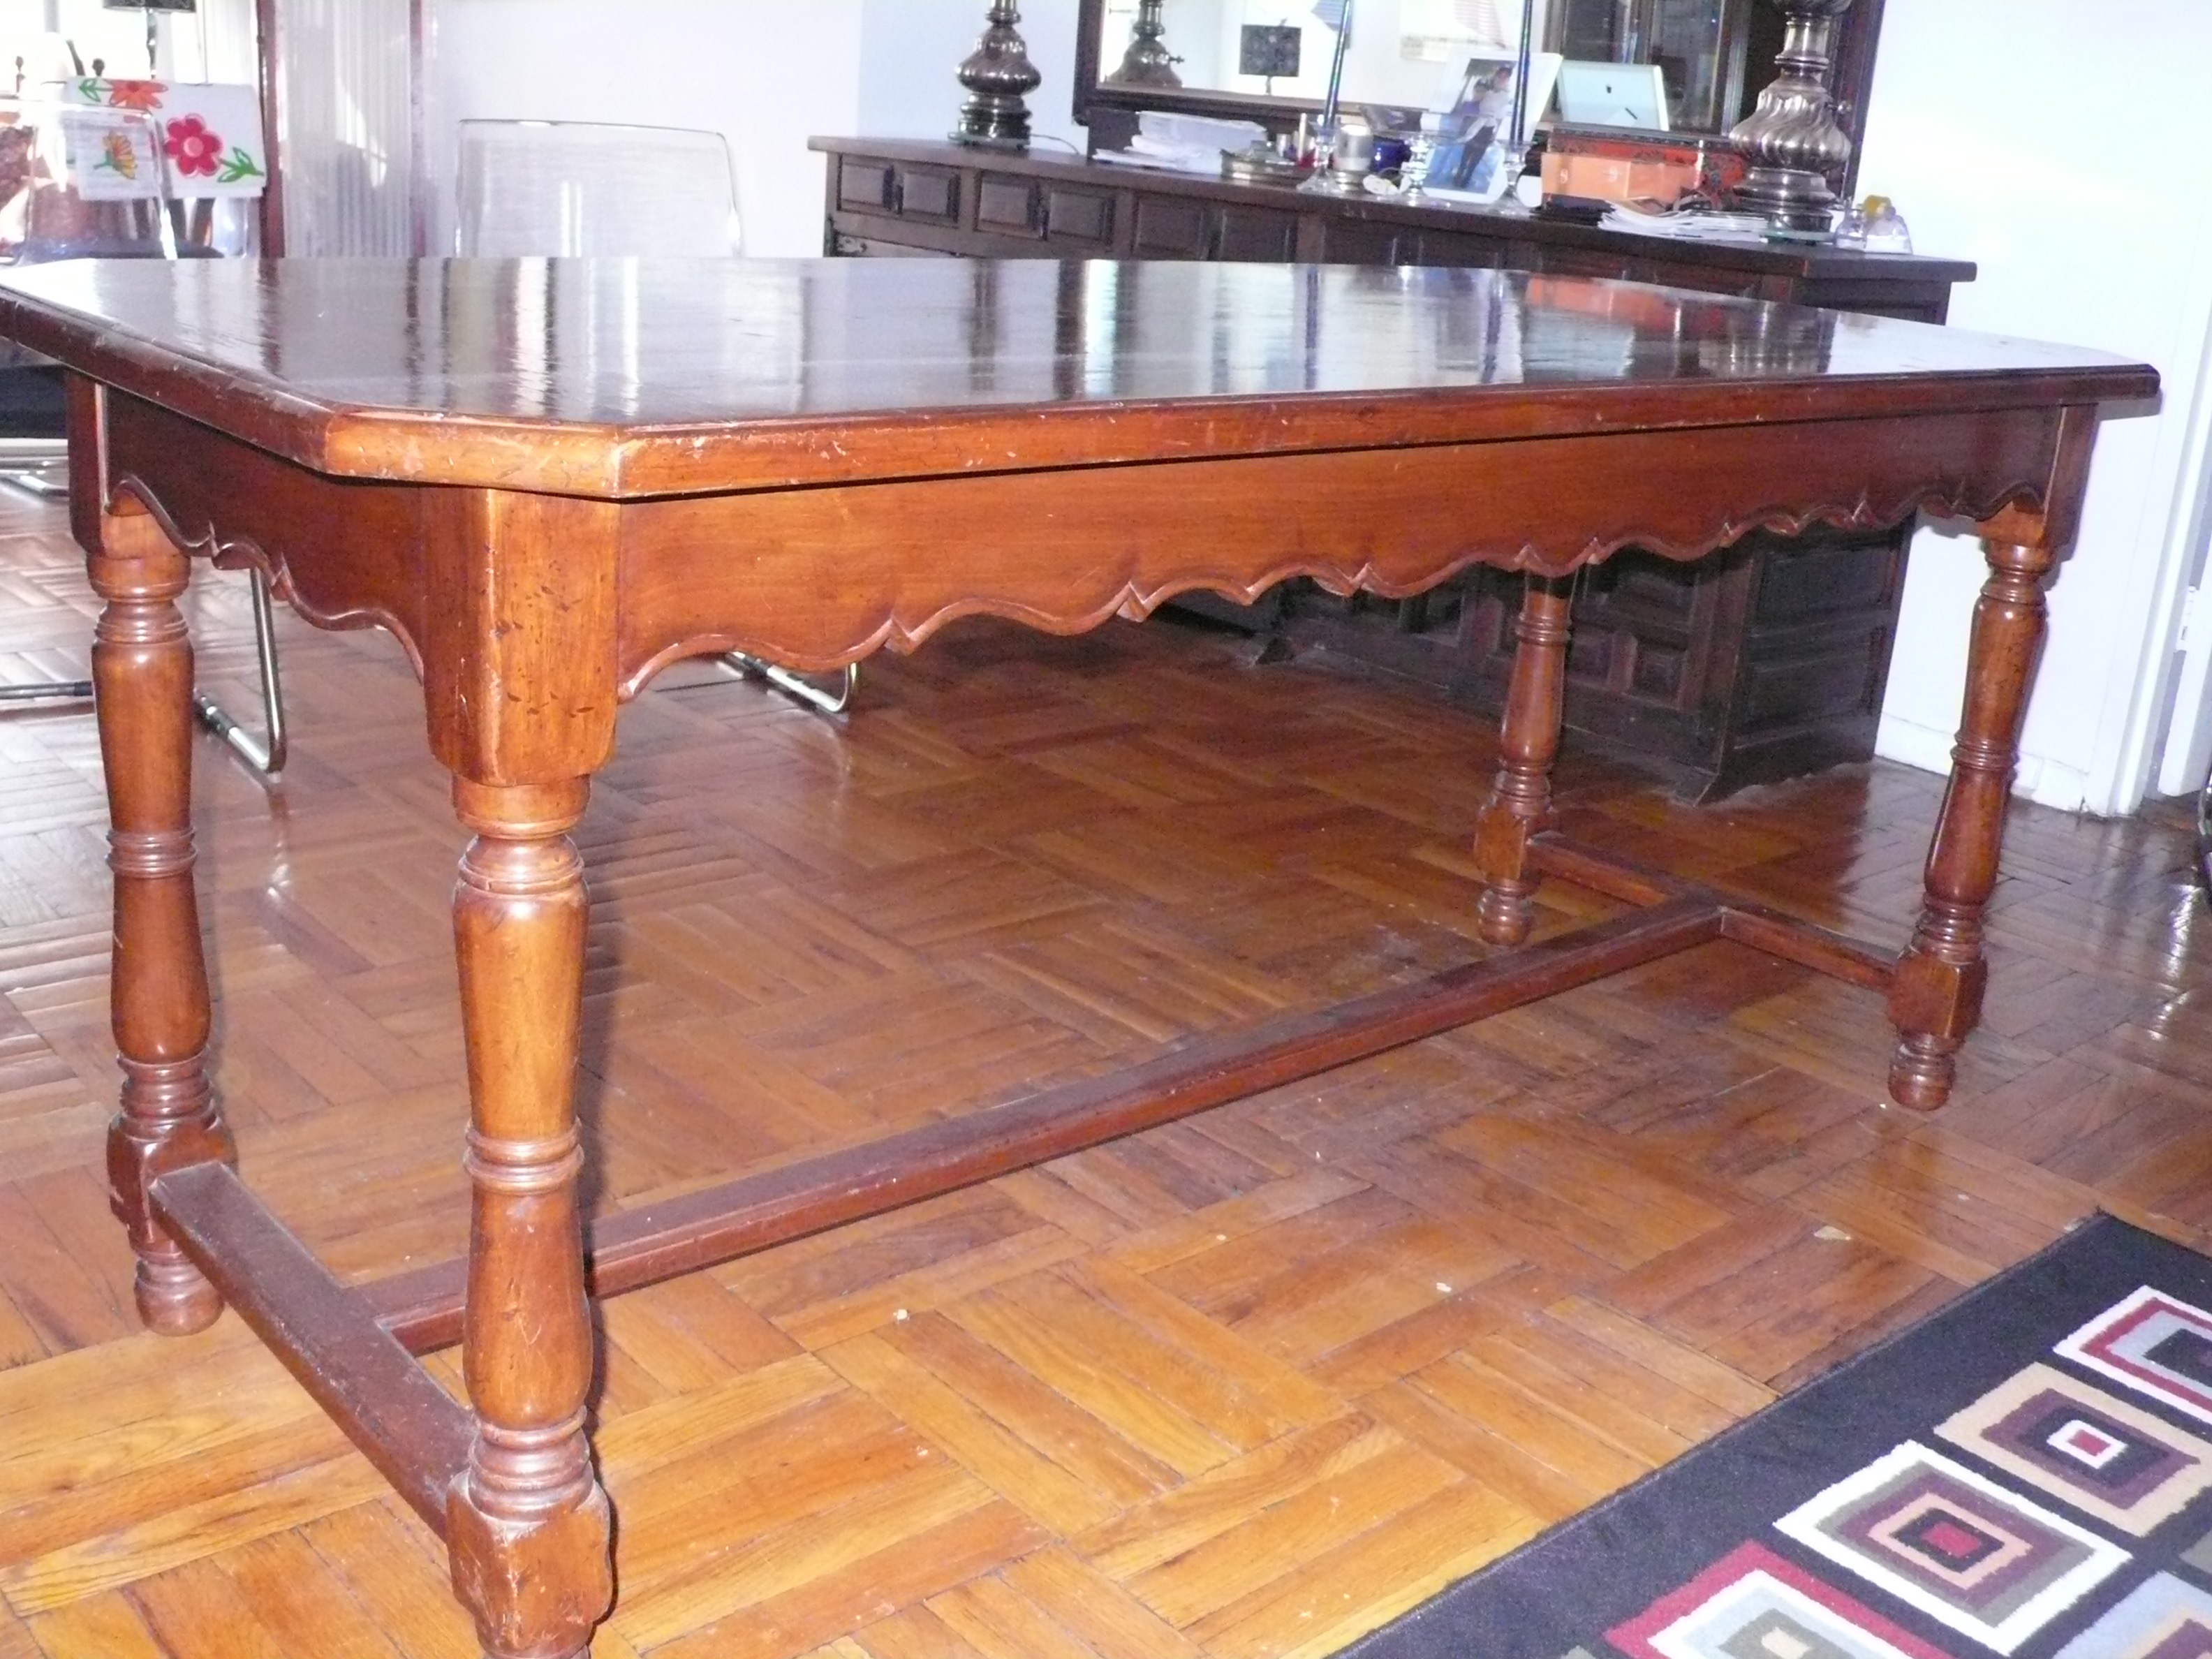 French Provincial Italian LibraryDining Table Chairish : french provincial italian librarydining table 1097aspectfitampwidth640ampheight640 from www.chairish.com size 640 x 640 jpeg 58kB